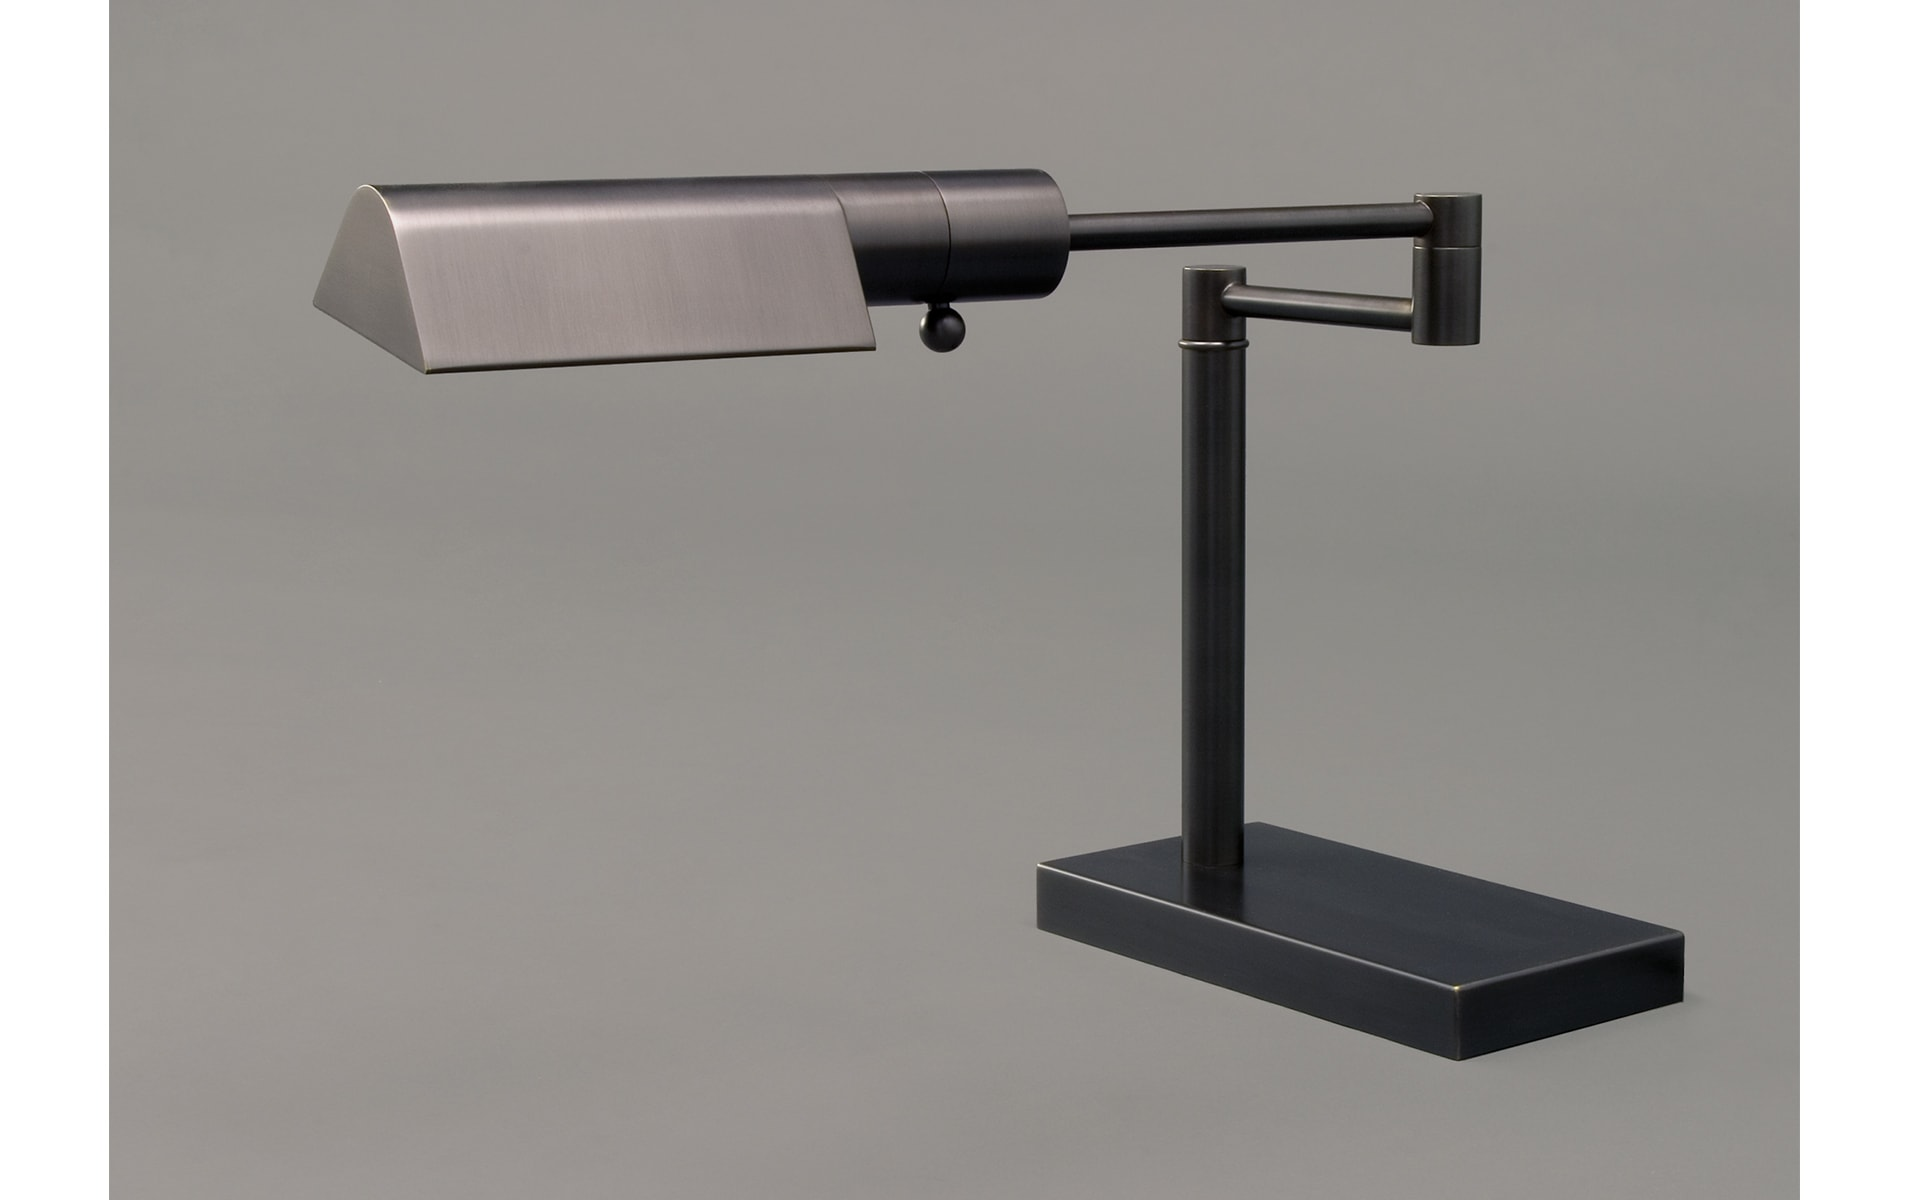 Pharmacy Swing Arm Desk Lamp